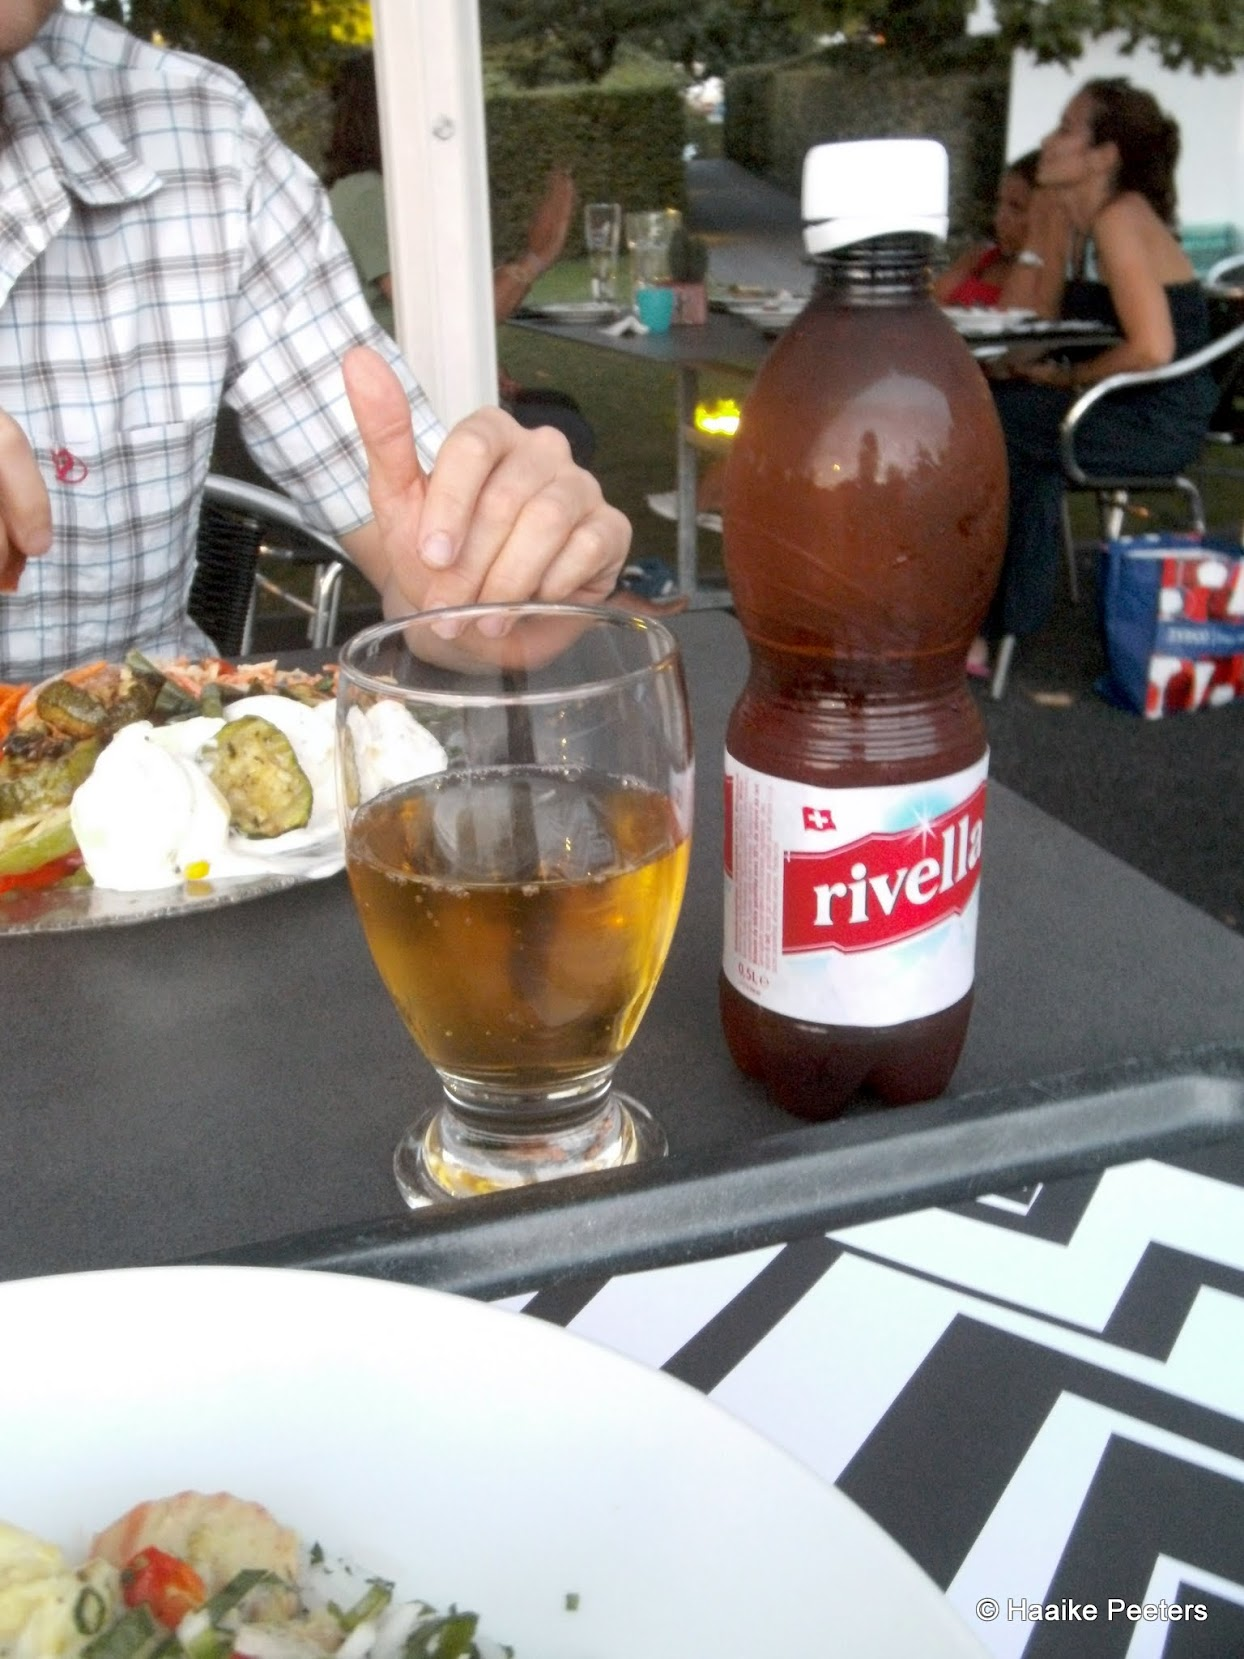 Rivella (Le petit requin)